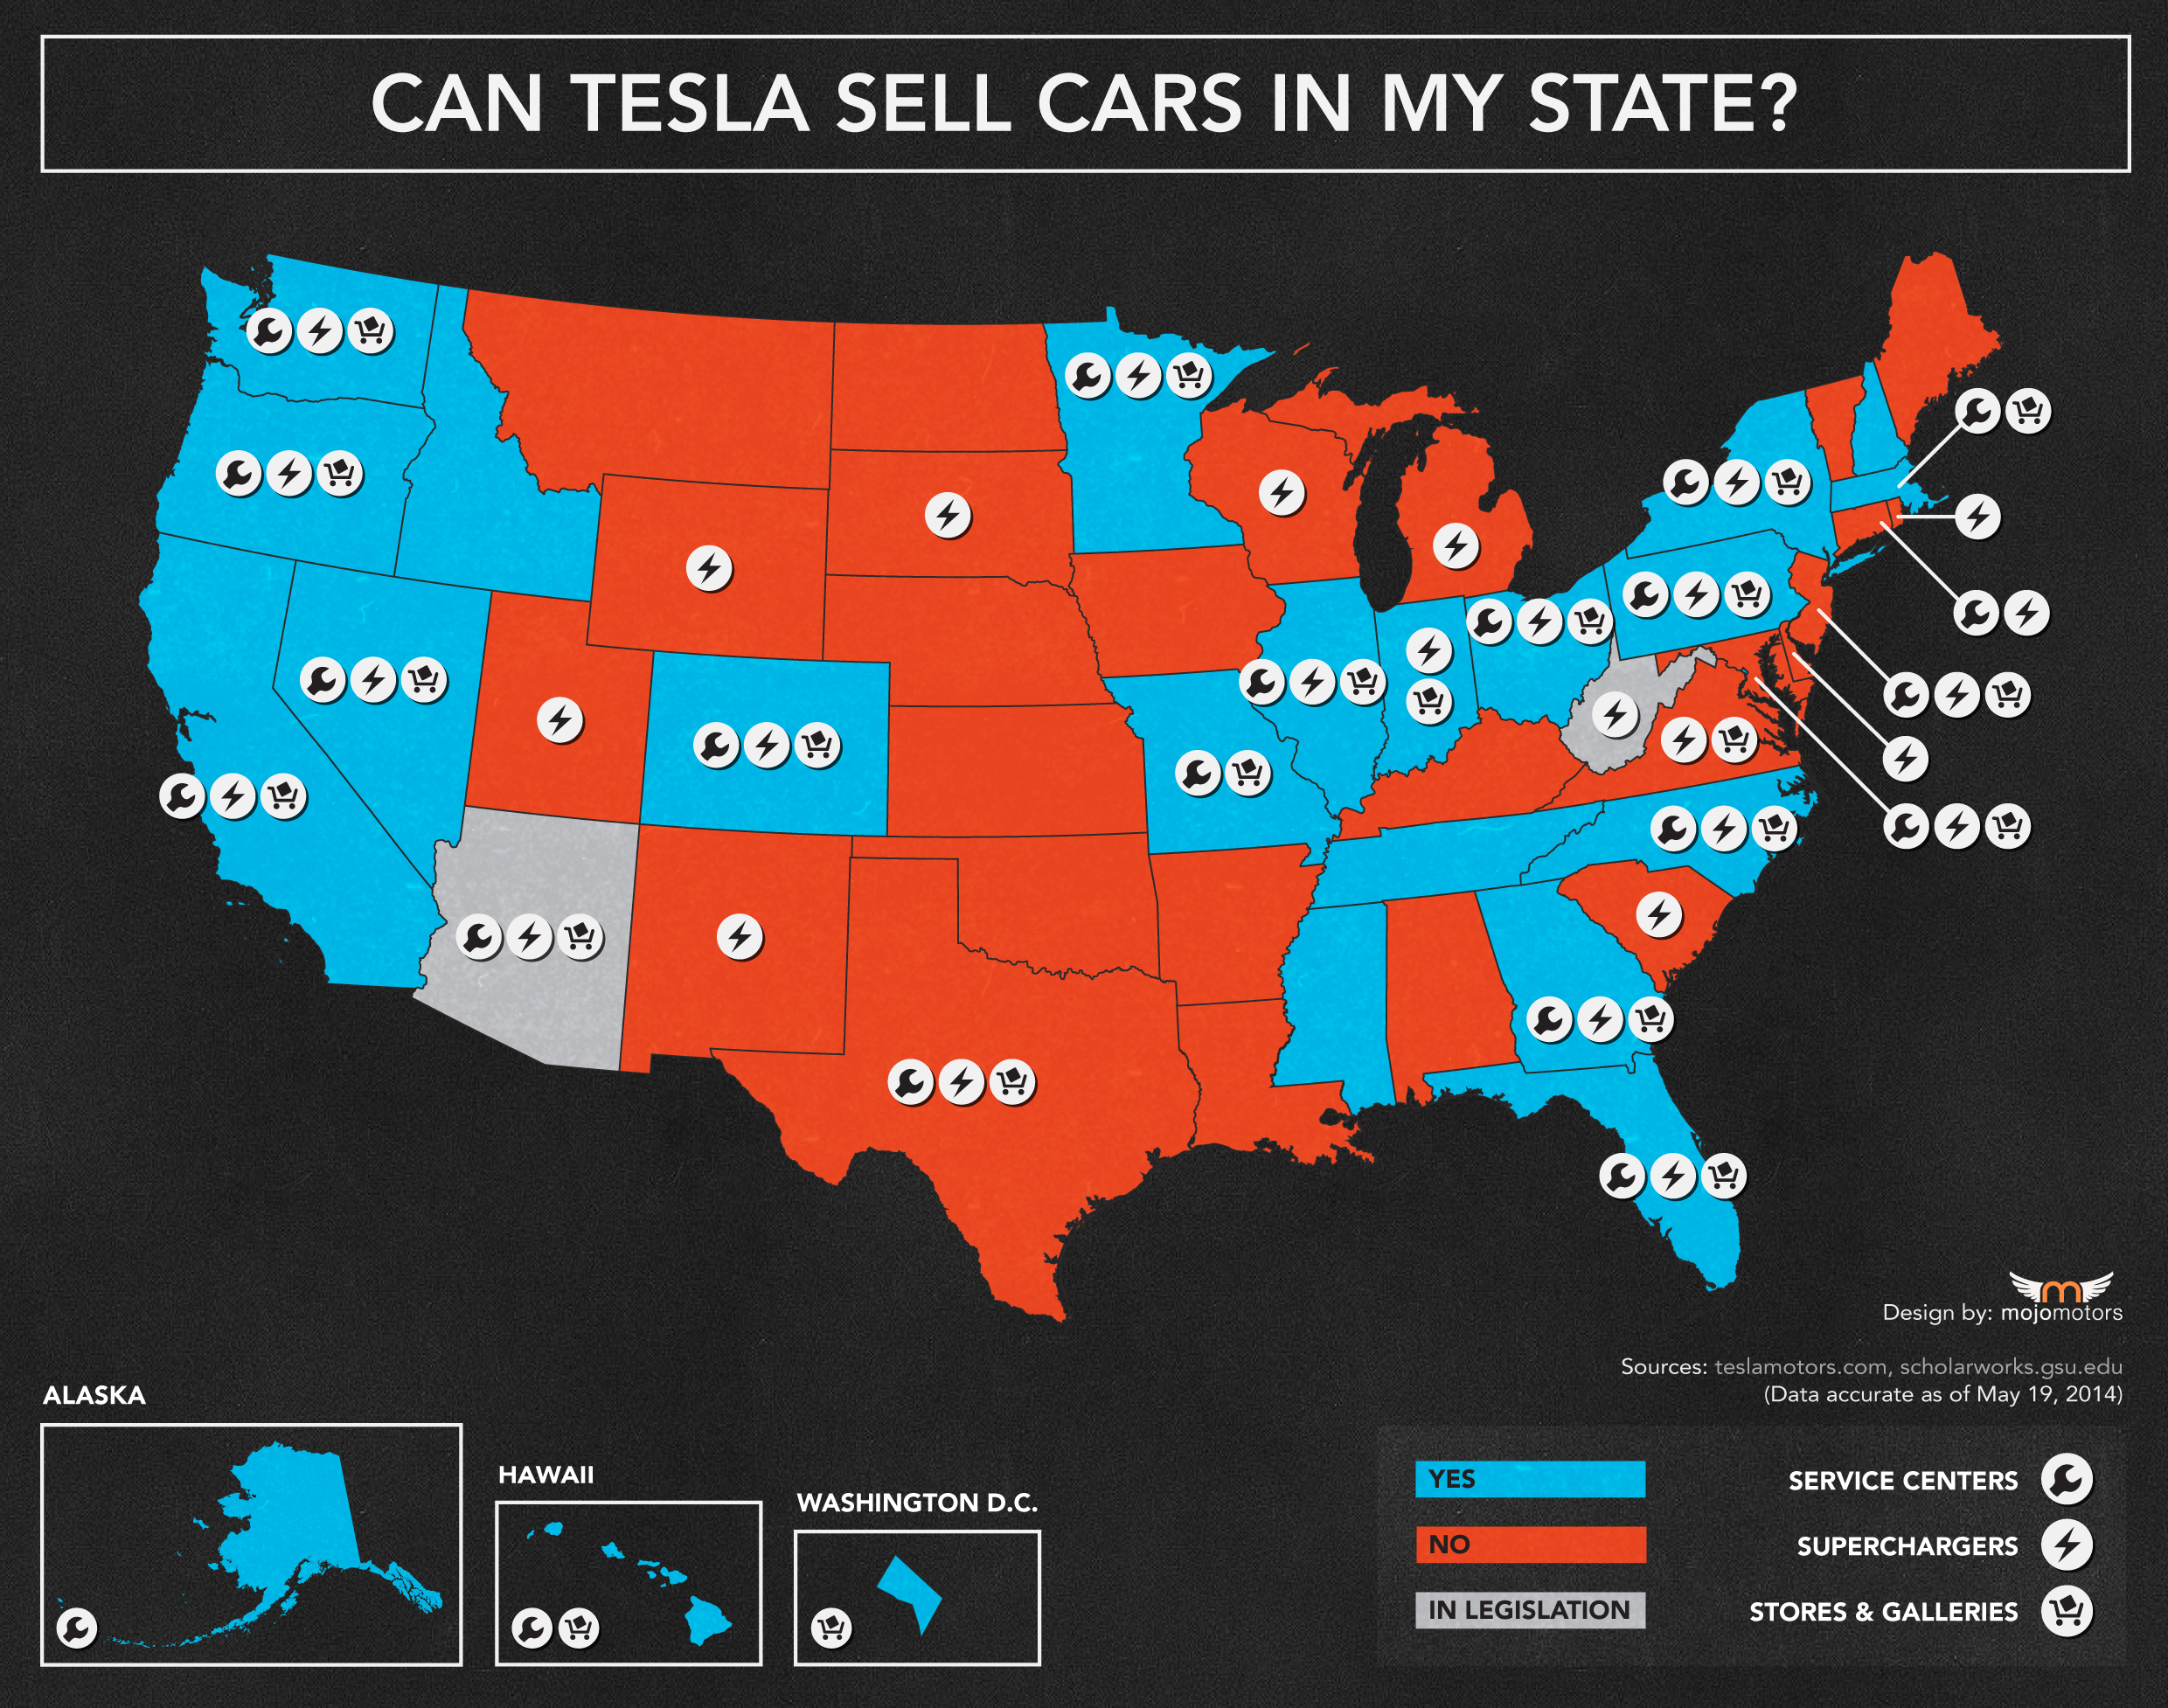 Petropawns In Certain States Ban Sale Of Tesla Cars : LA IMC